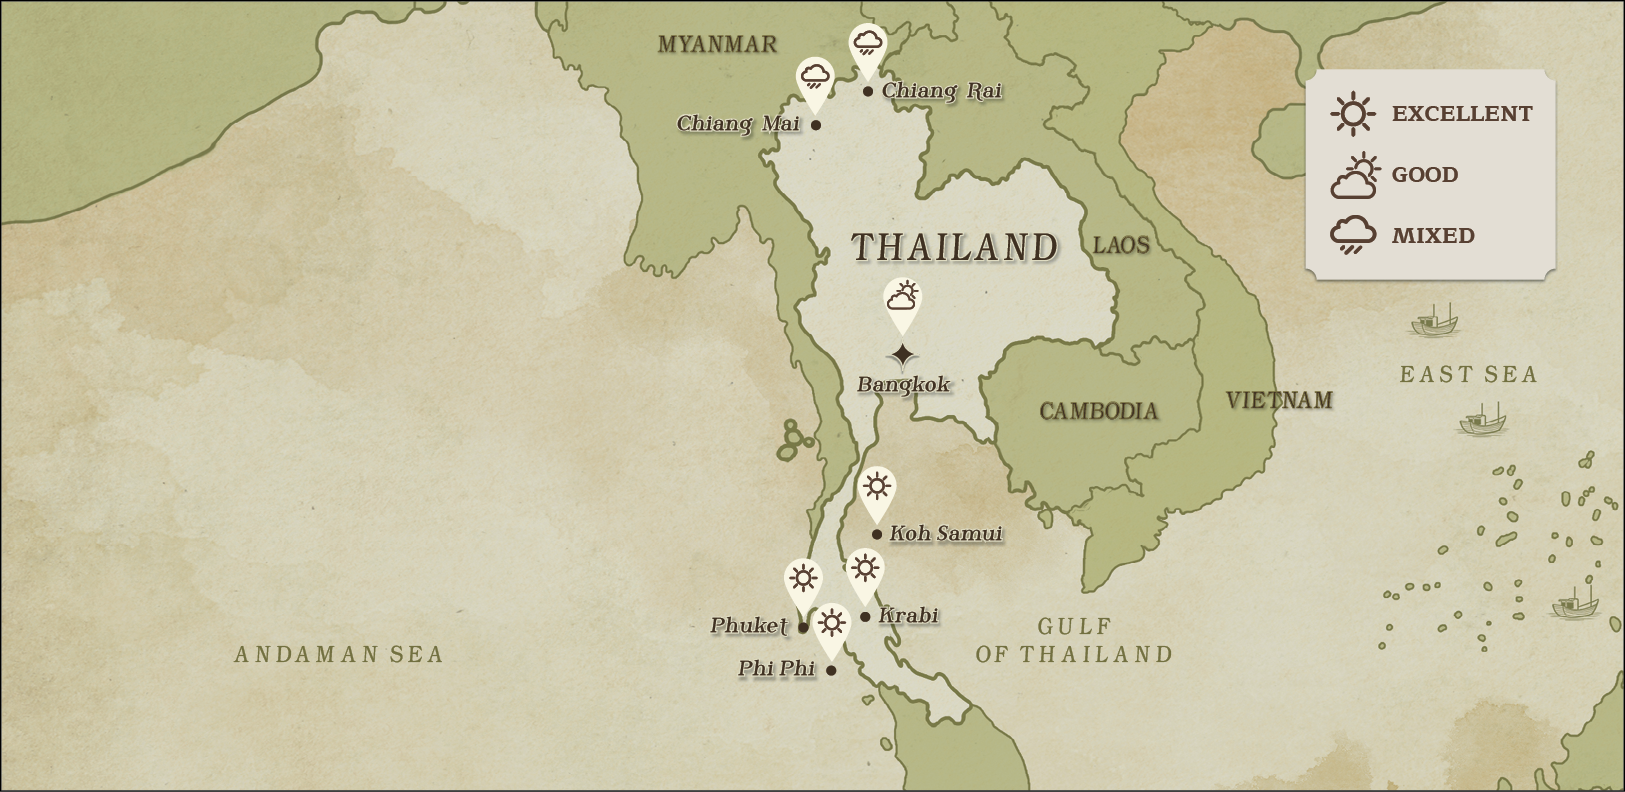 THAILAND WEATHER MAP March